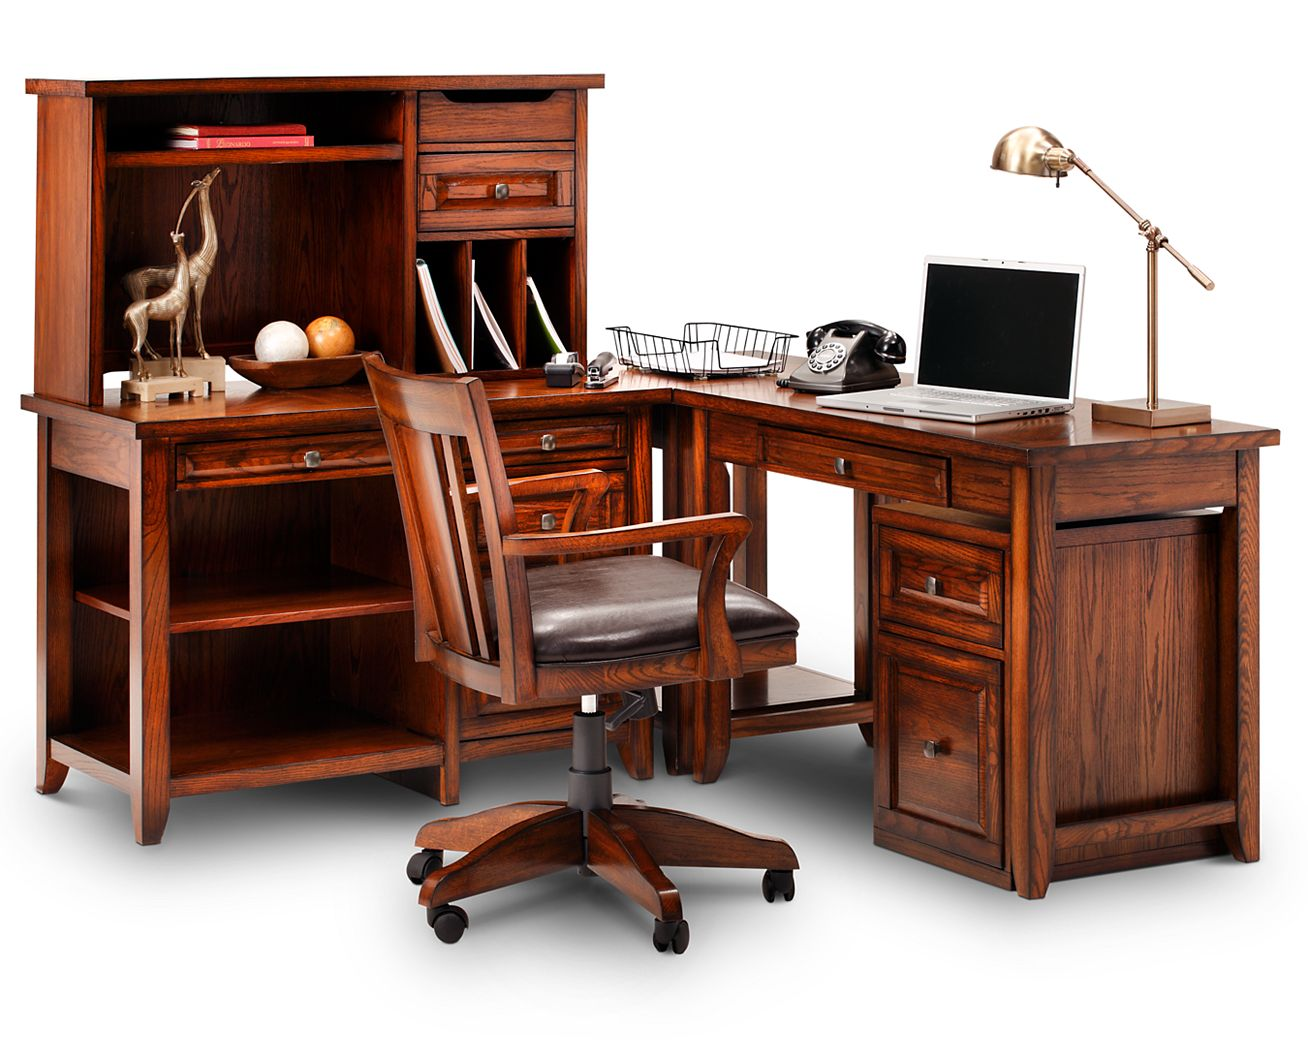 Oak Ridge 4 Pc  Desk Set. Home Office Desks  Desk   Hutch Sets   Furniture Row